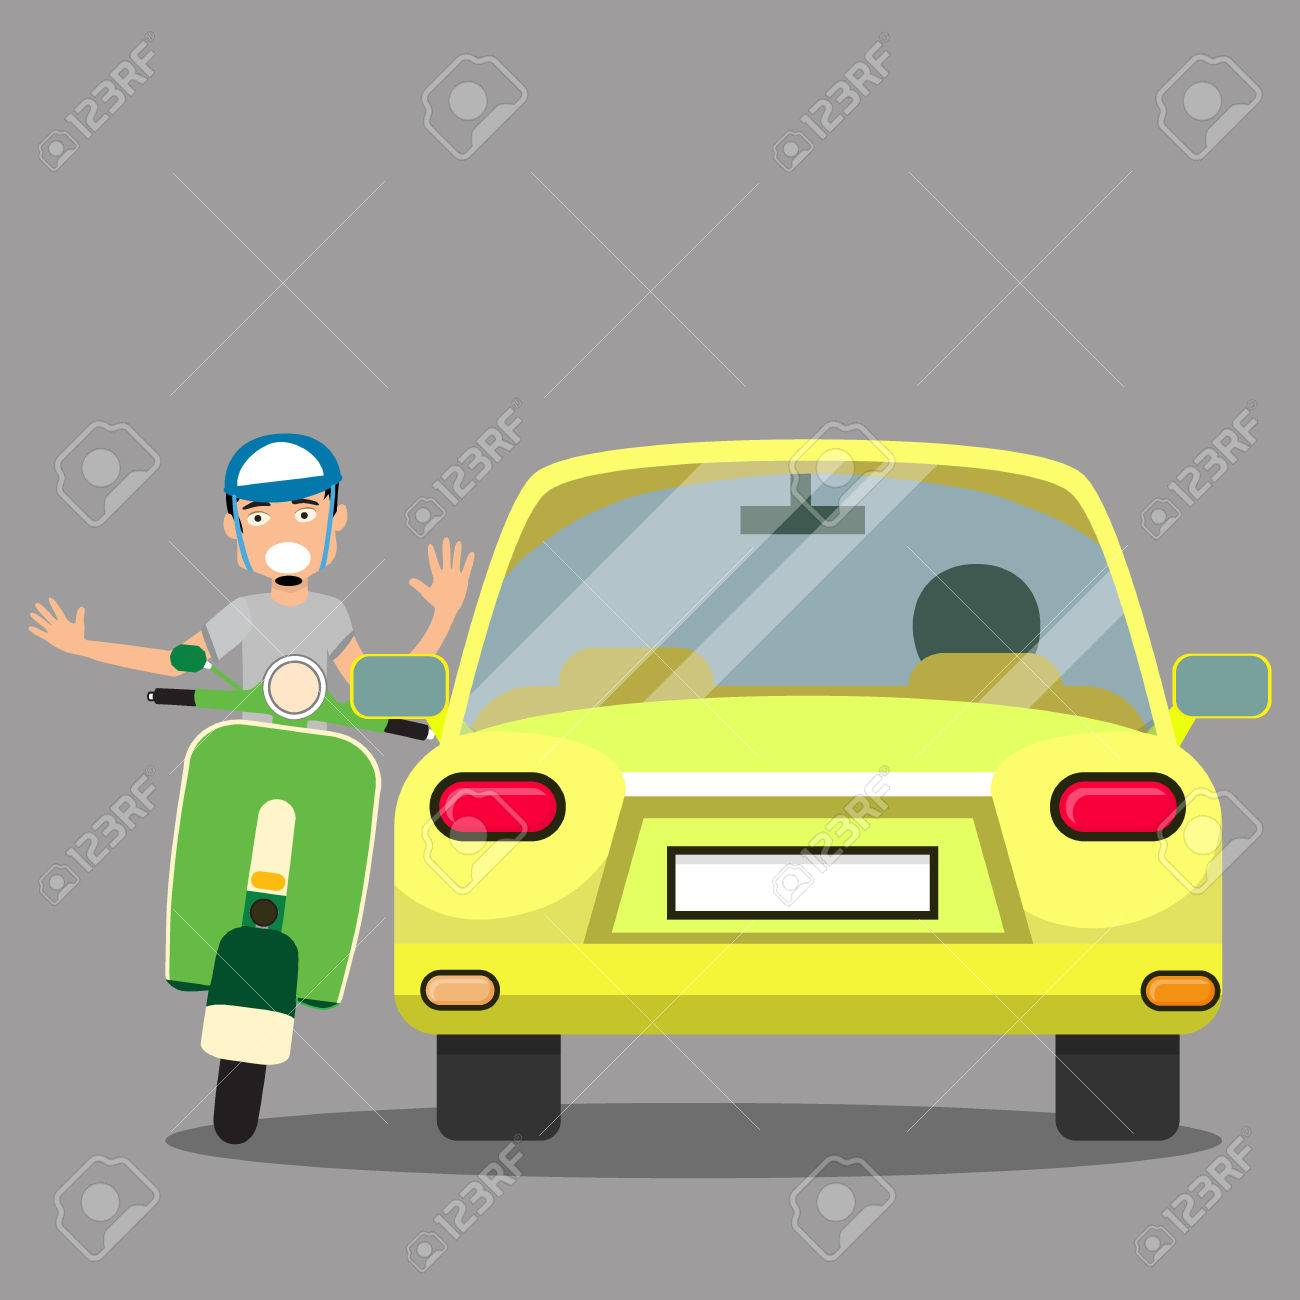 uptight vehicle driver and Issue with scooter. Flat Vector Illustration - 78505810